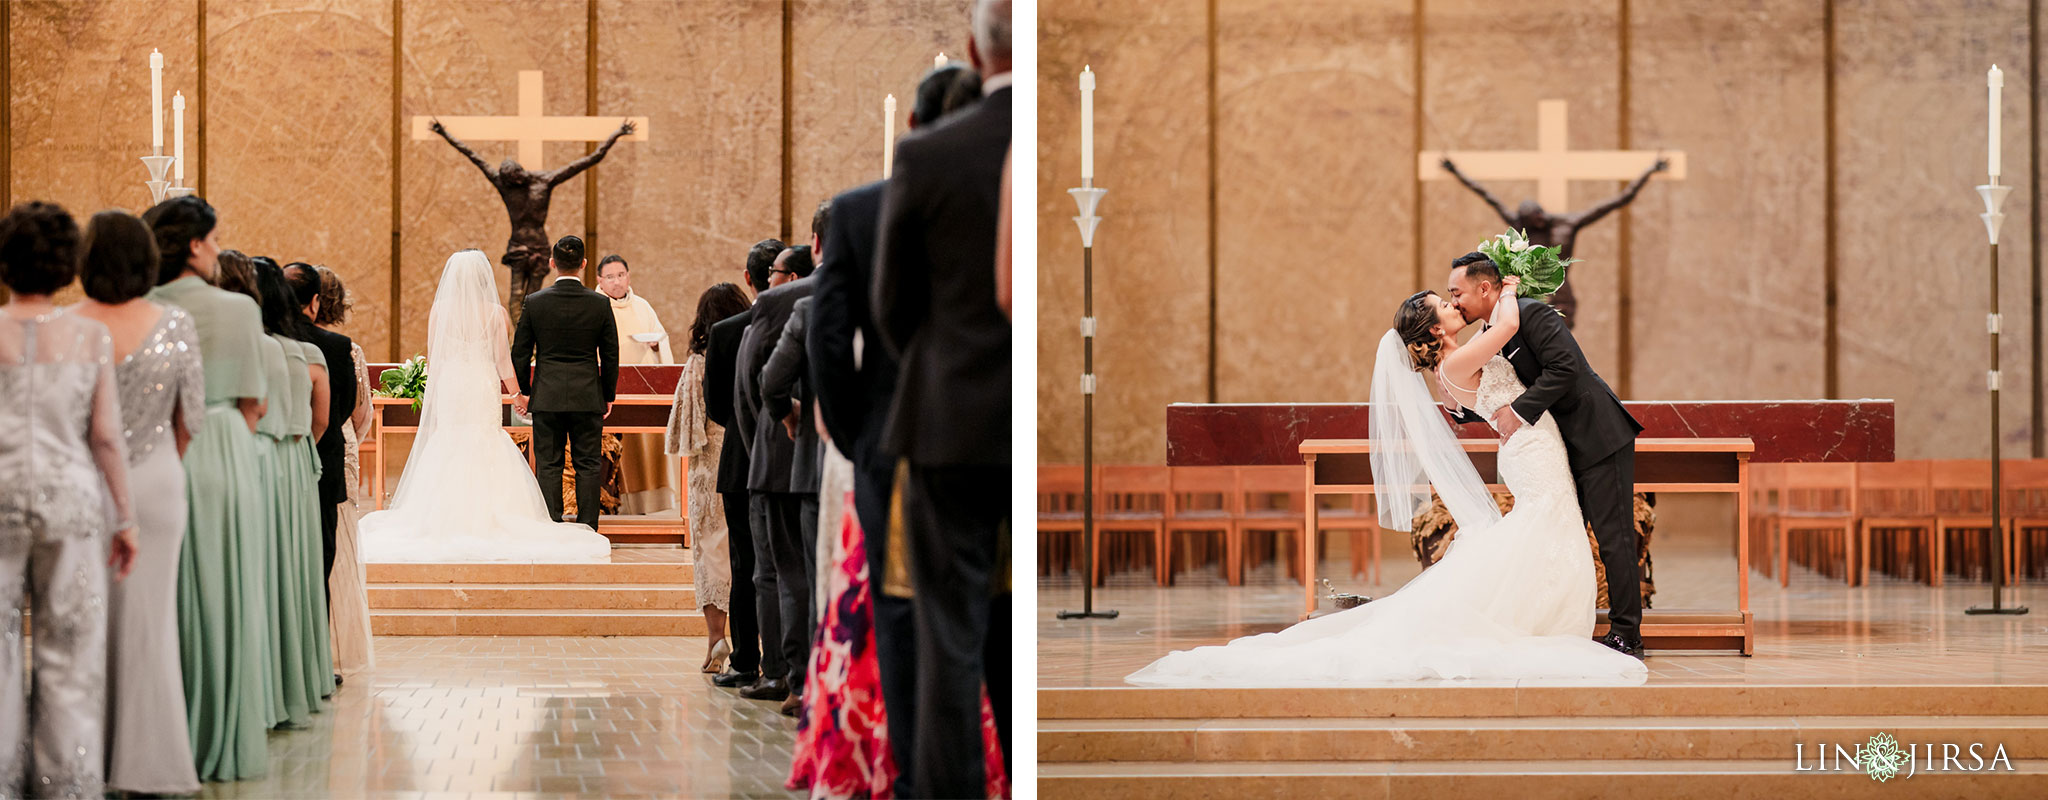 025 cathedral of our lady of angels los angeles wedding ceremony photography